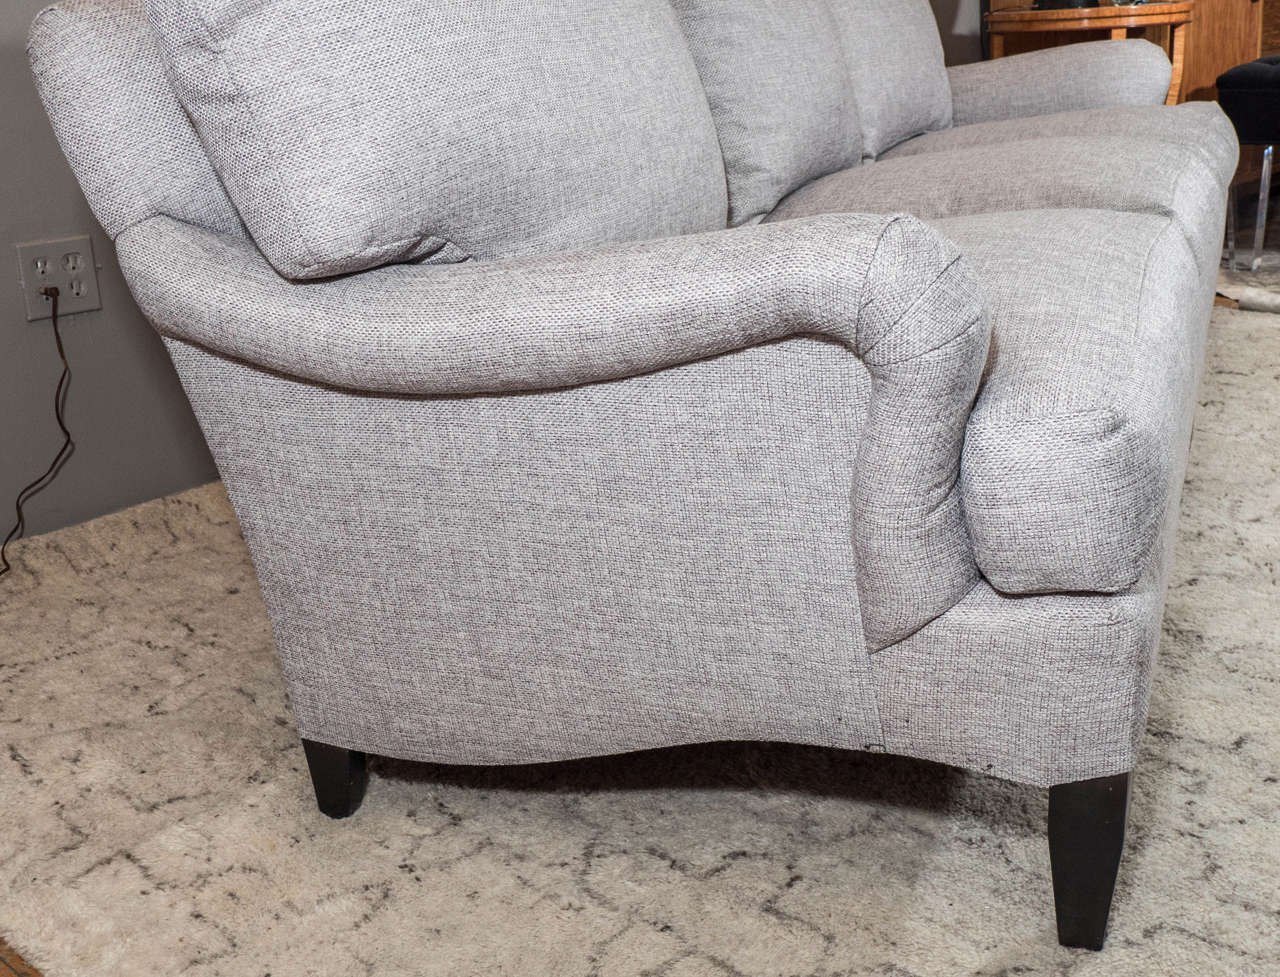 Late 20th Century English Arm Sofa in Grey Linen and Down Cushions In Excellent Condition For Sale In New York, NY